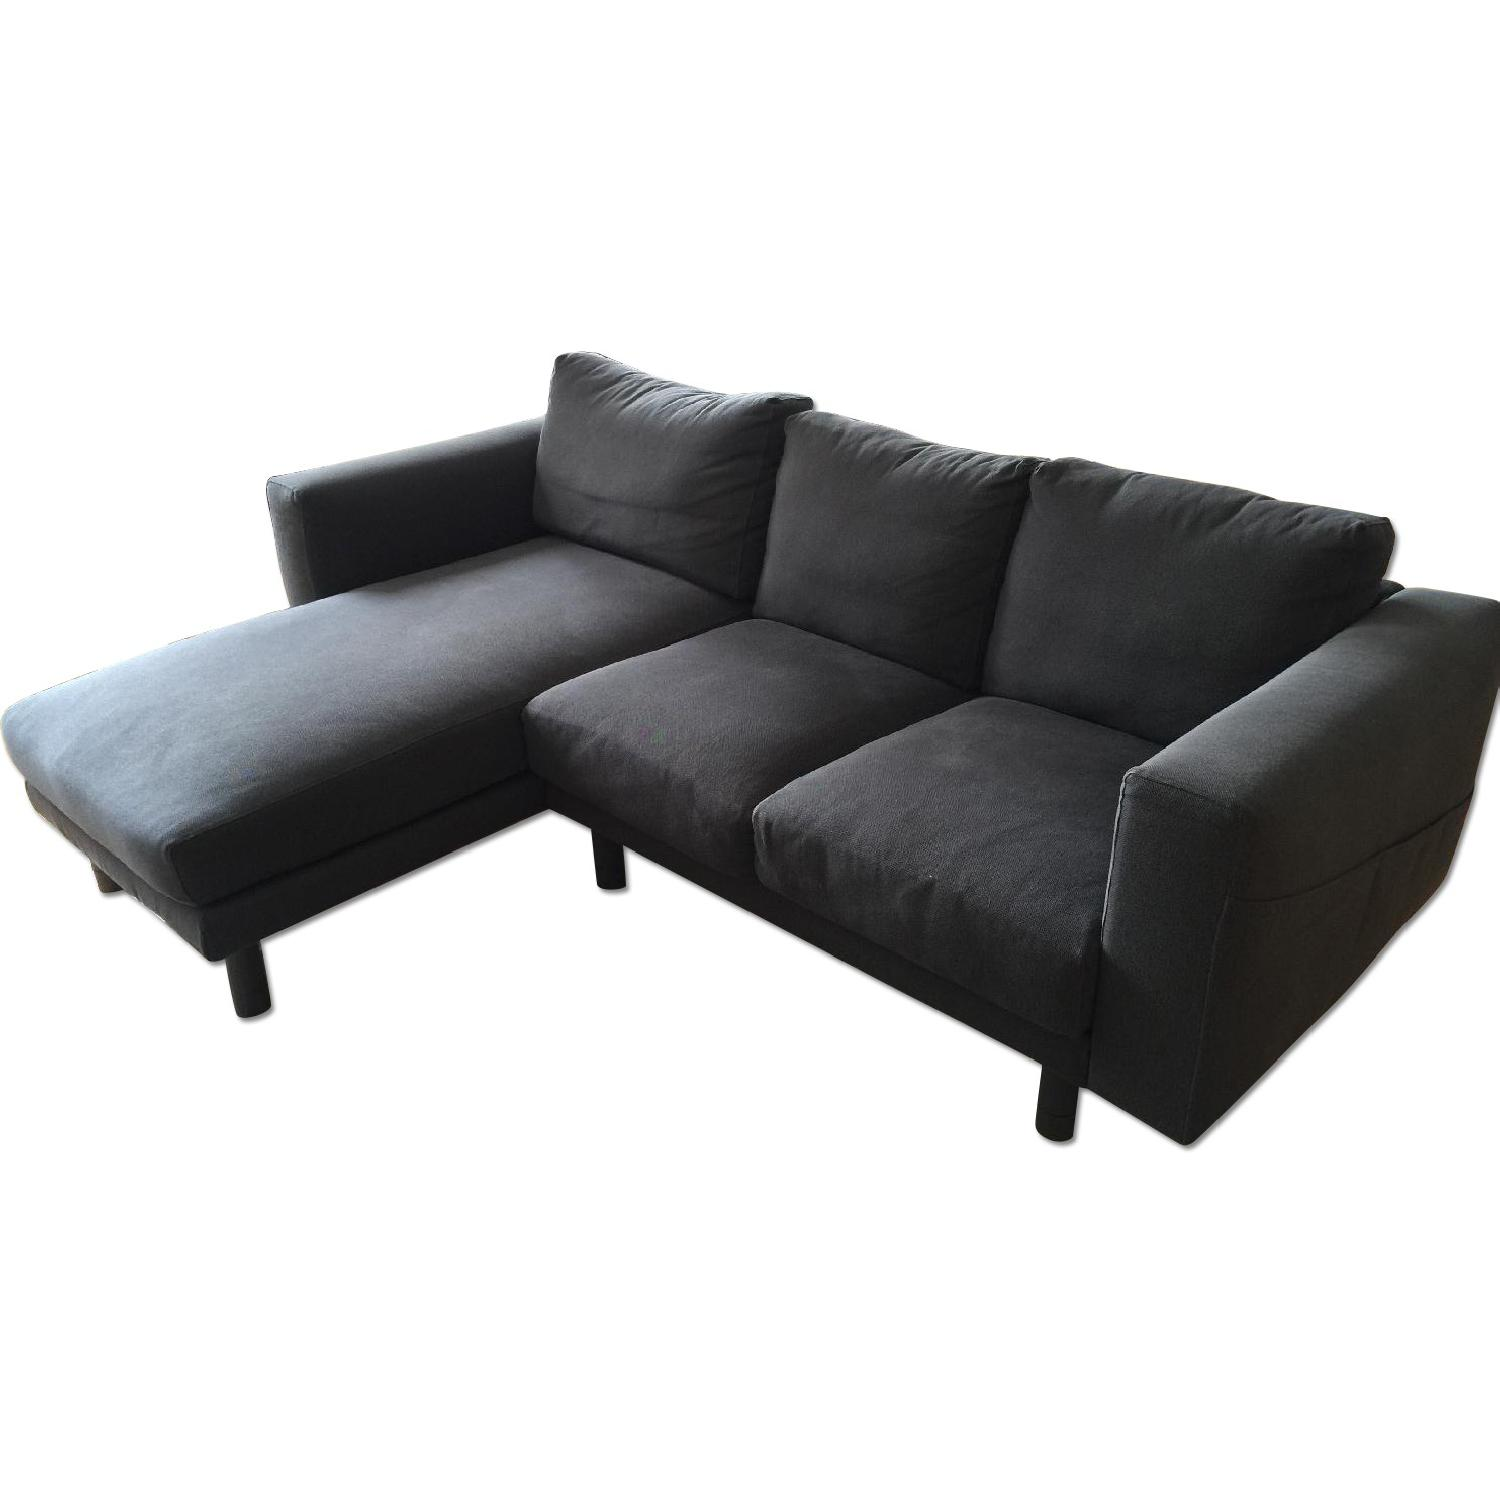 Ikea Sectional Couch - image-0